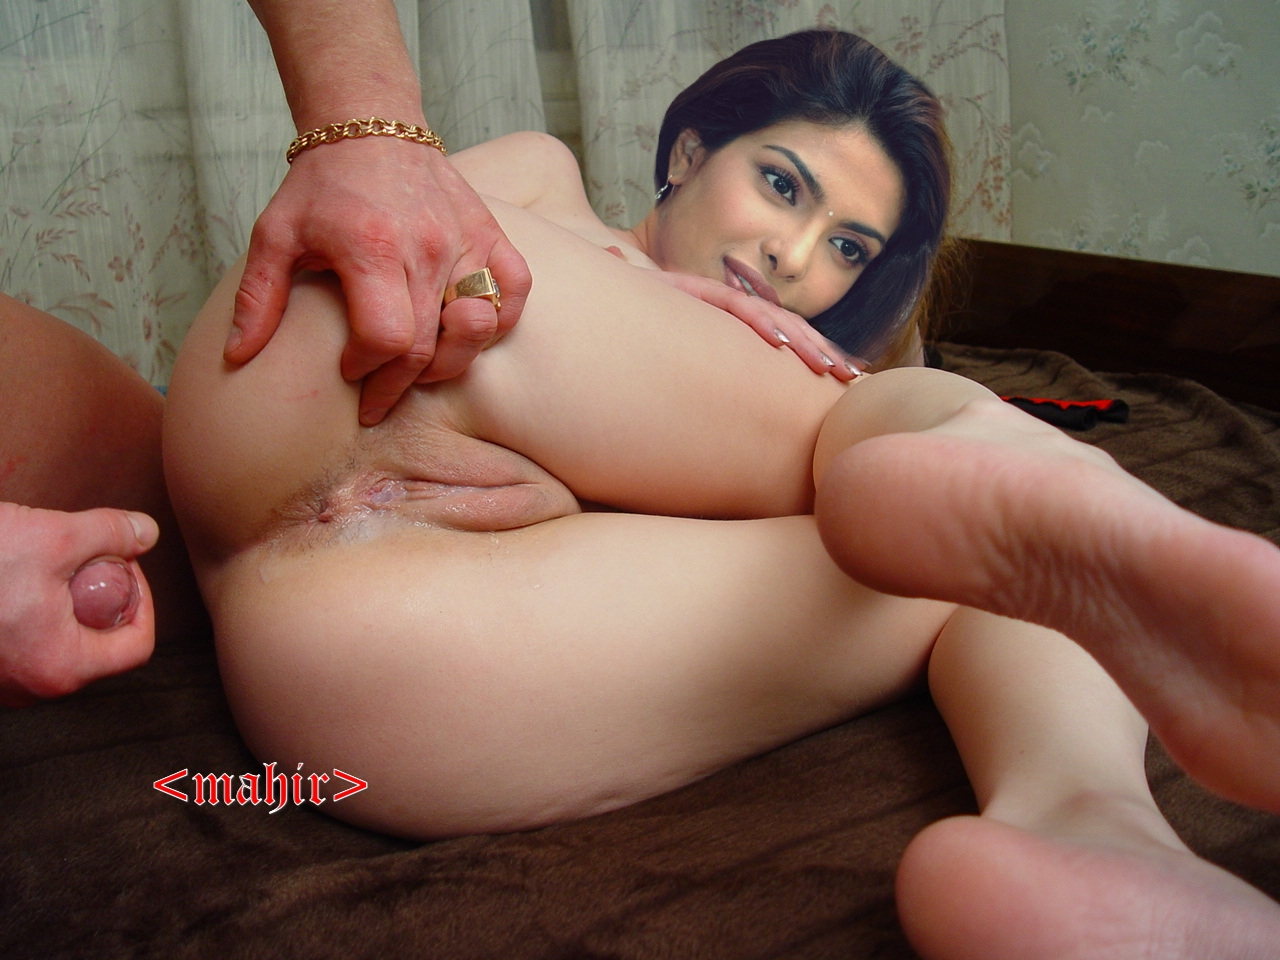 Naked priyanka chopra giving blowjob